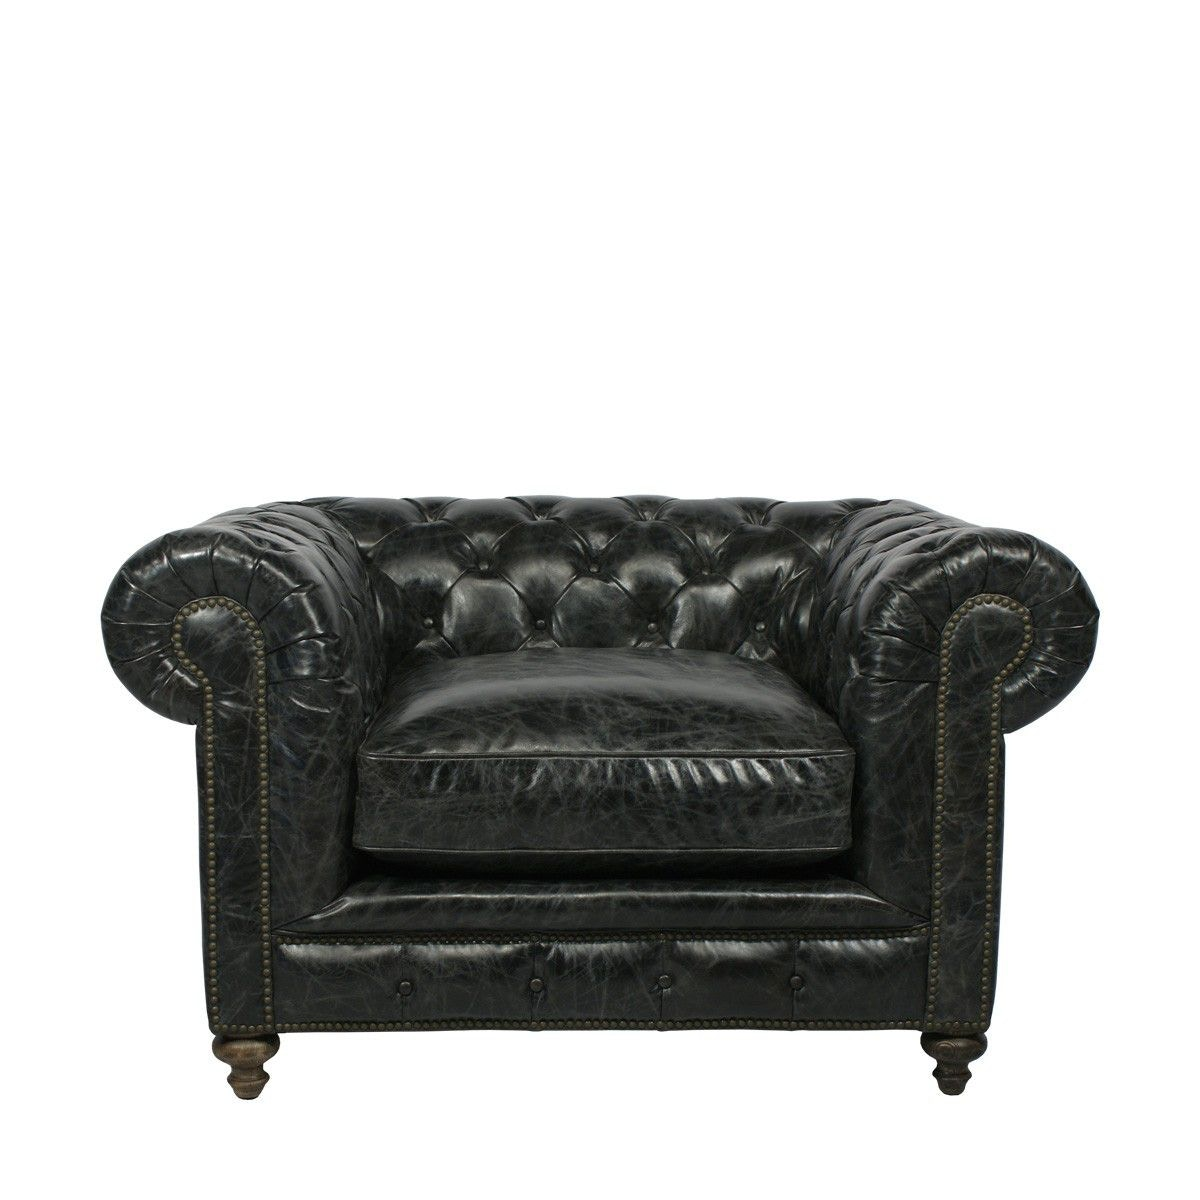 Curations Limited Cigar Club Leather Arm Chair 7841.3002.2 ...